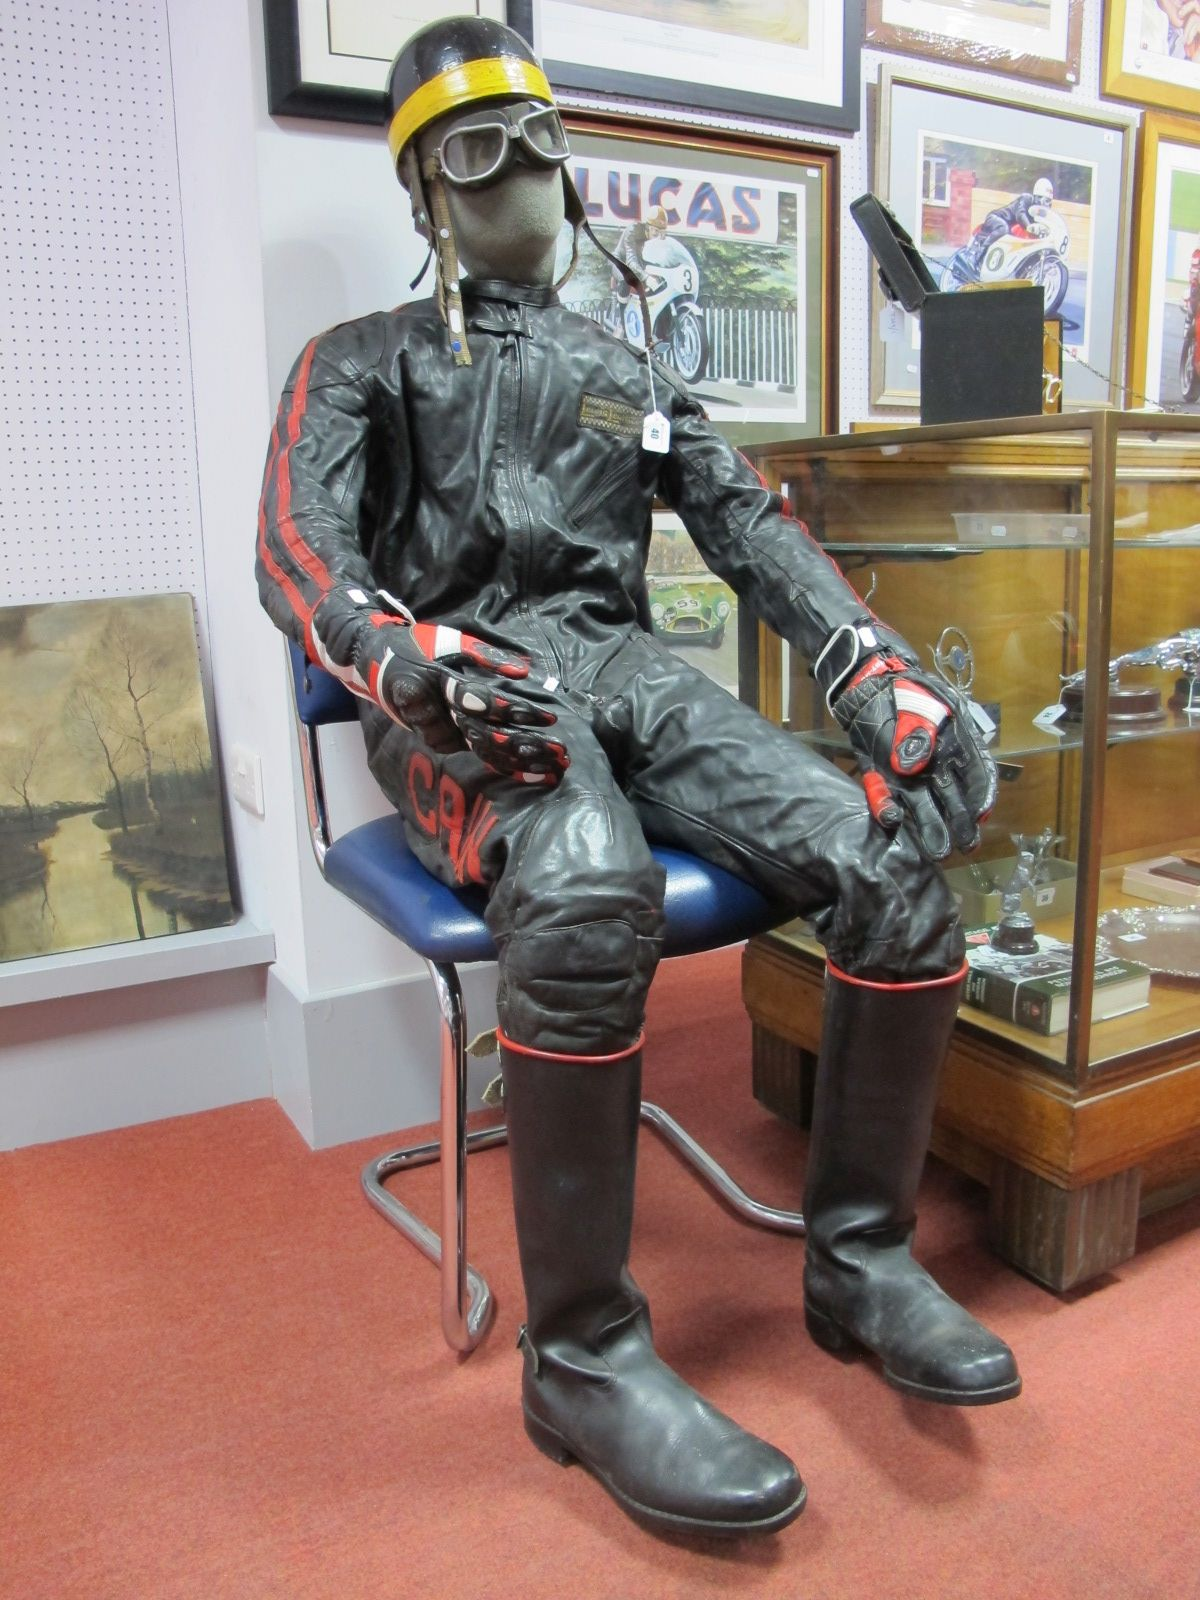 Lot 40 - Late 1960's/ Early 1970's Lewis Motorbike Racing, one piece leather suit, black with red detail